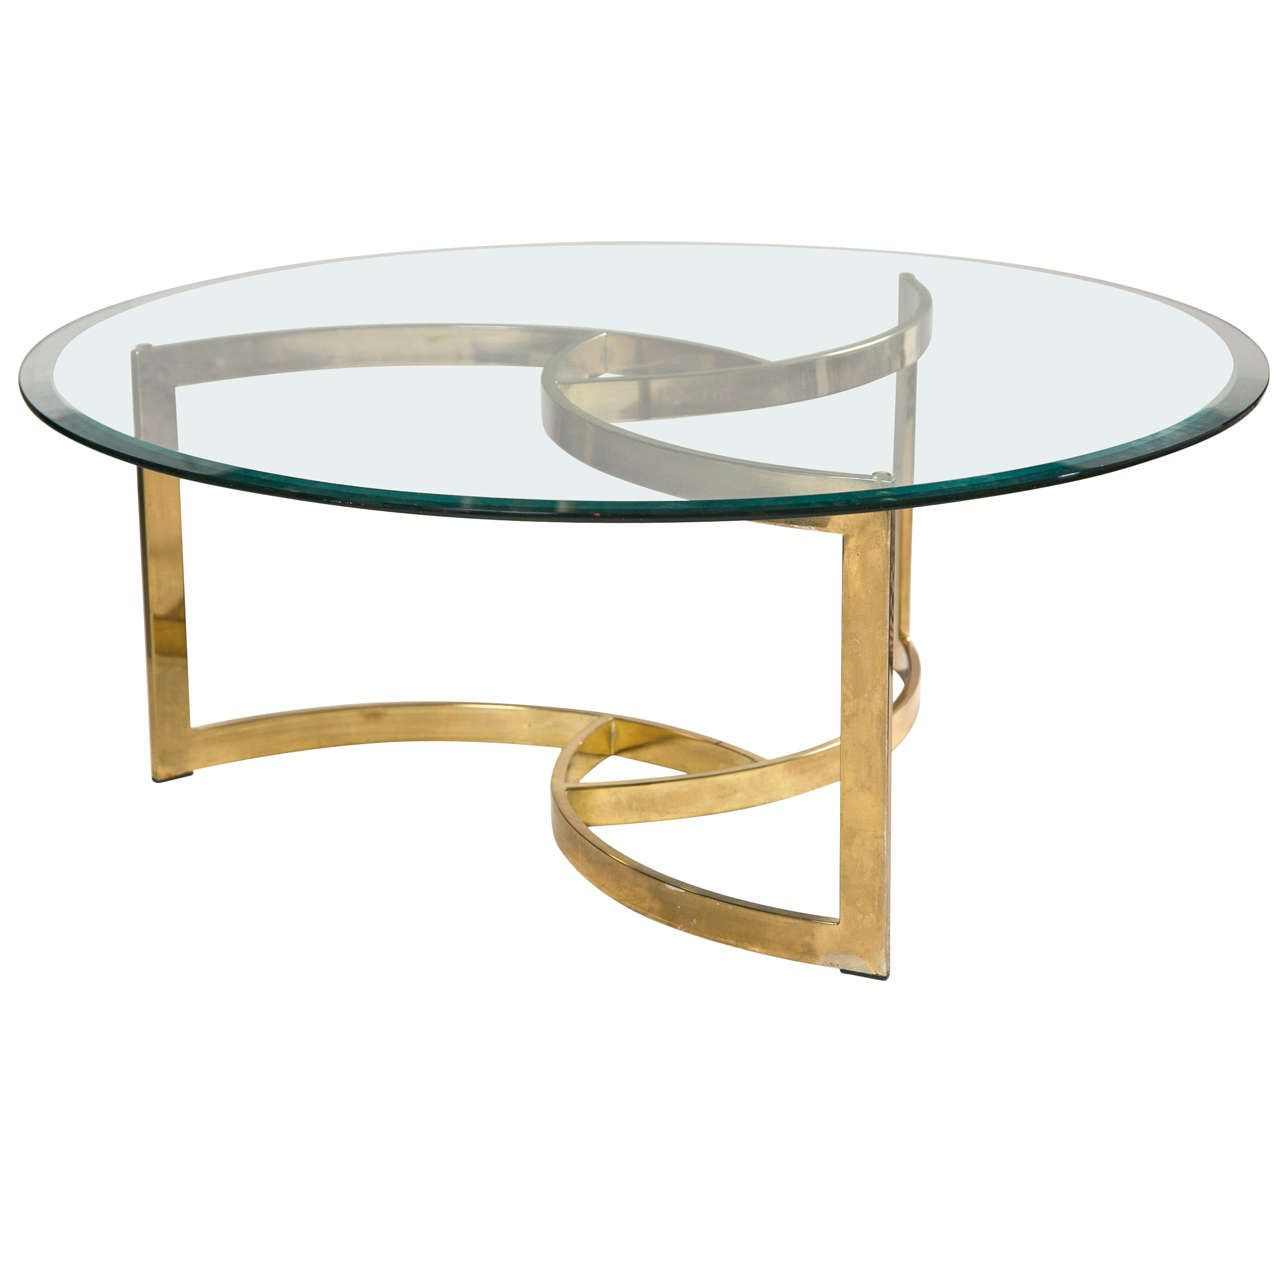 Amazing Gold Color Windmill Shape Metal Table Base And Combine With Round Shape Glass Top With Rou Round Glass Coffee Table Glass Top Coffee Table Coffee Table [ 1280 x 1280 Pixel ]